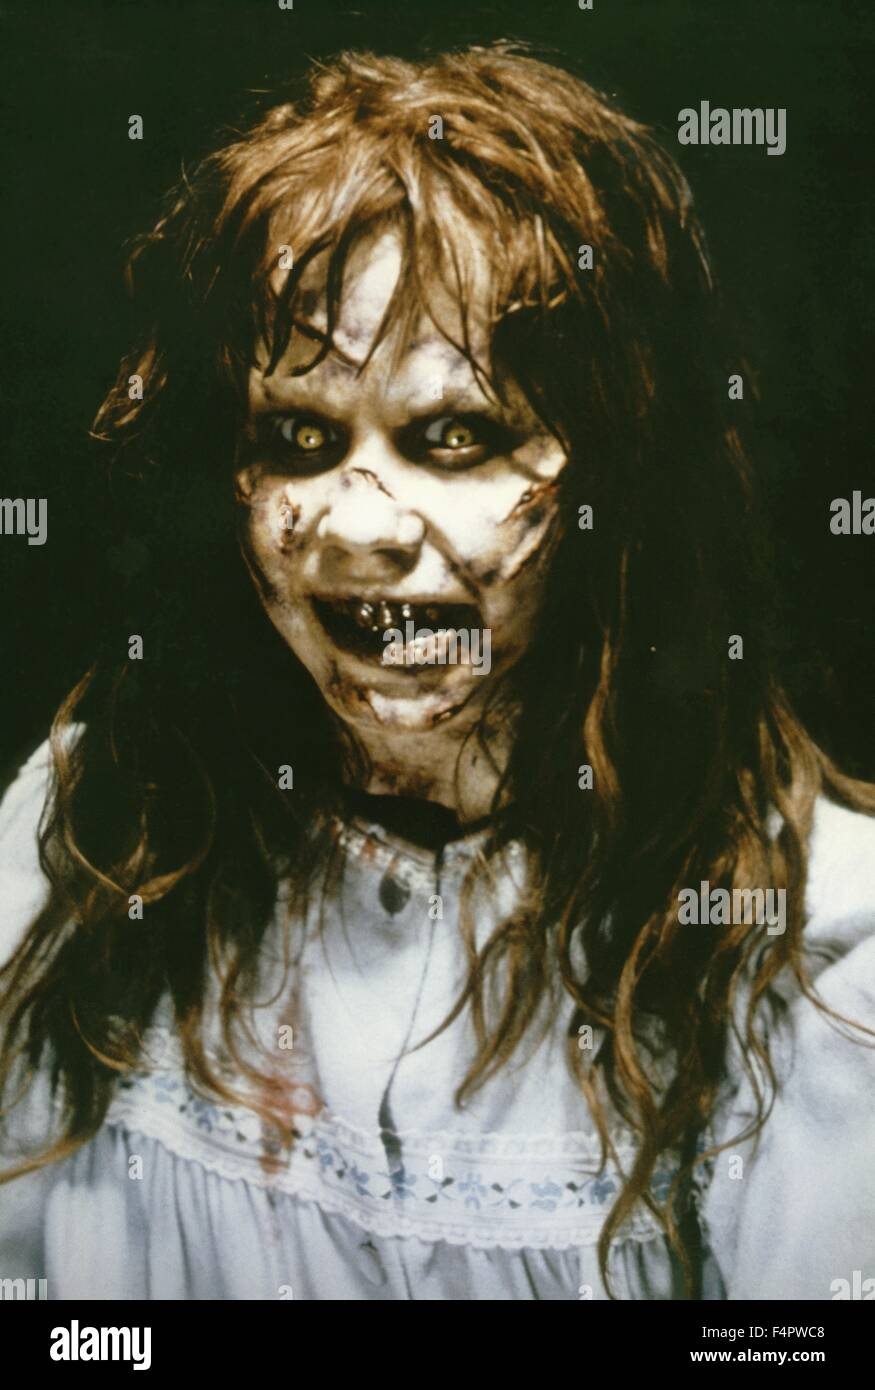 Linda Blair / The Exorcist / 1973 directed by William Friedkin [Warner Bros. Pictures] - Stock Image